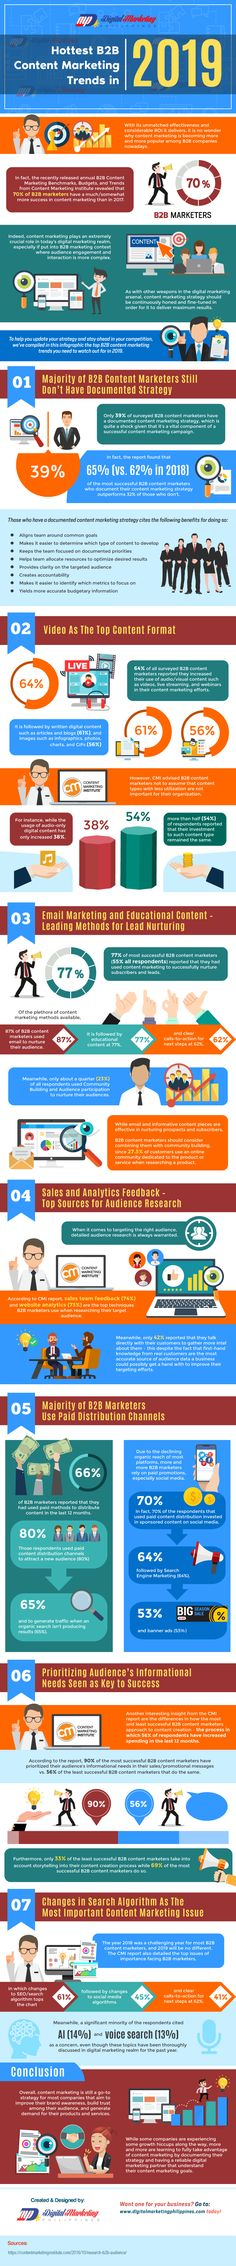 The content marketing trends you need to know in this infographic. How to grow your business effectively with the new content marketing trends. Inbound Marketing, Content Marketing Strategy, Business Marketing, Social Media Marketing, Business Infographics, Internet Marketing Company, Online Marketing, Digital Marketing, Marketing News